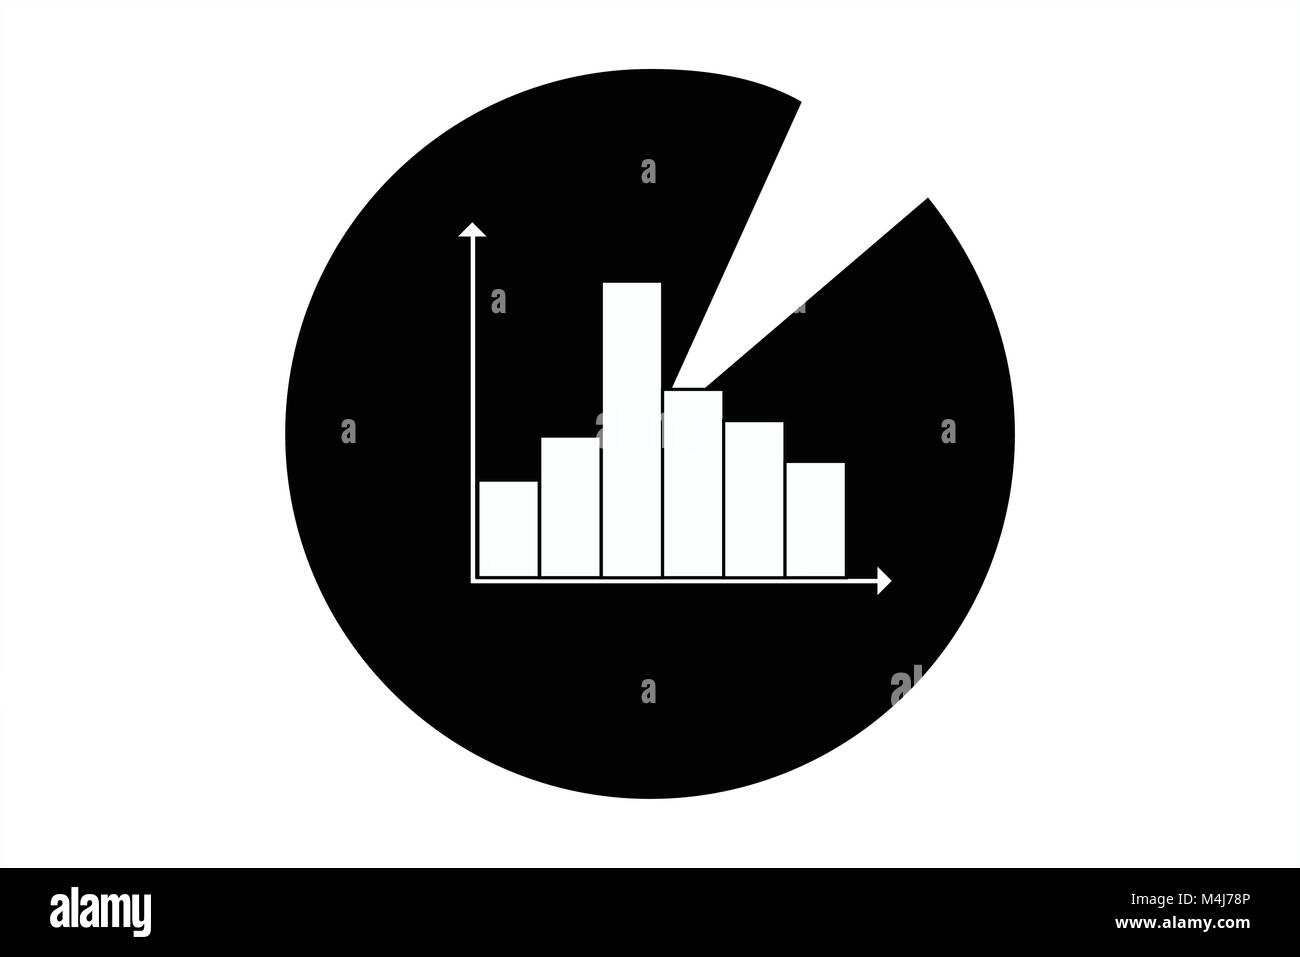 hight resolution of statistics icon symbol for data analysis diagrams business assessment mathematical evaluation artwork of pie chart and bar diagram exploitation